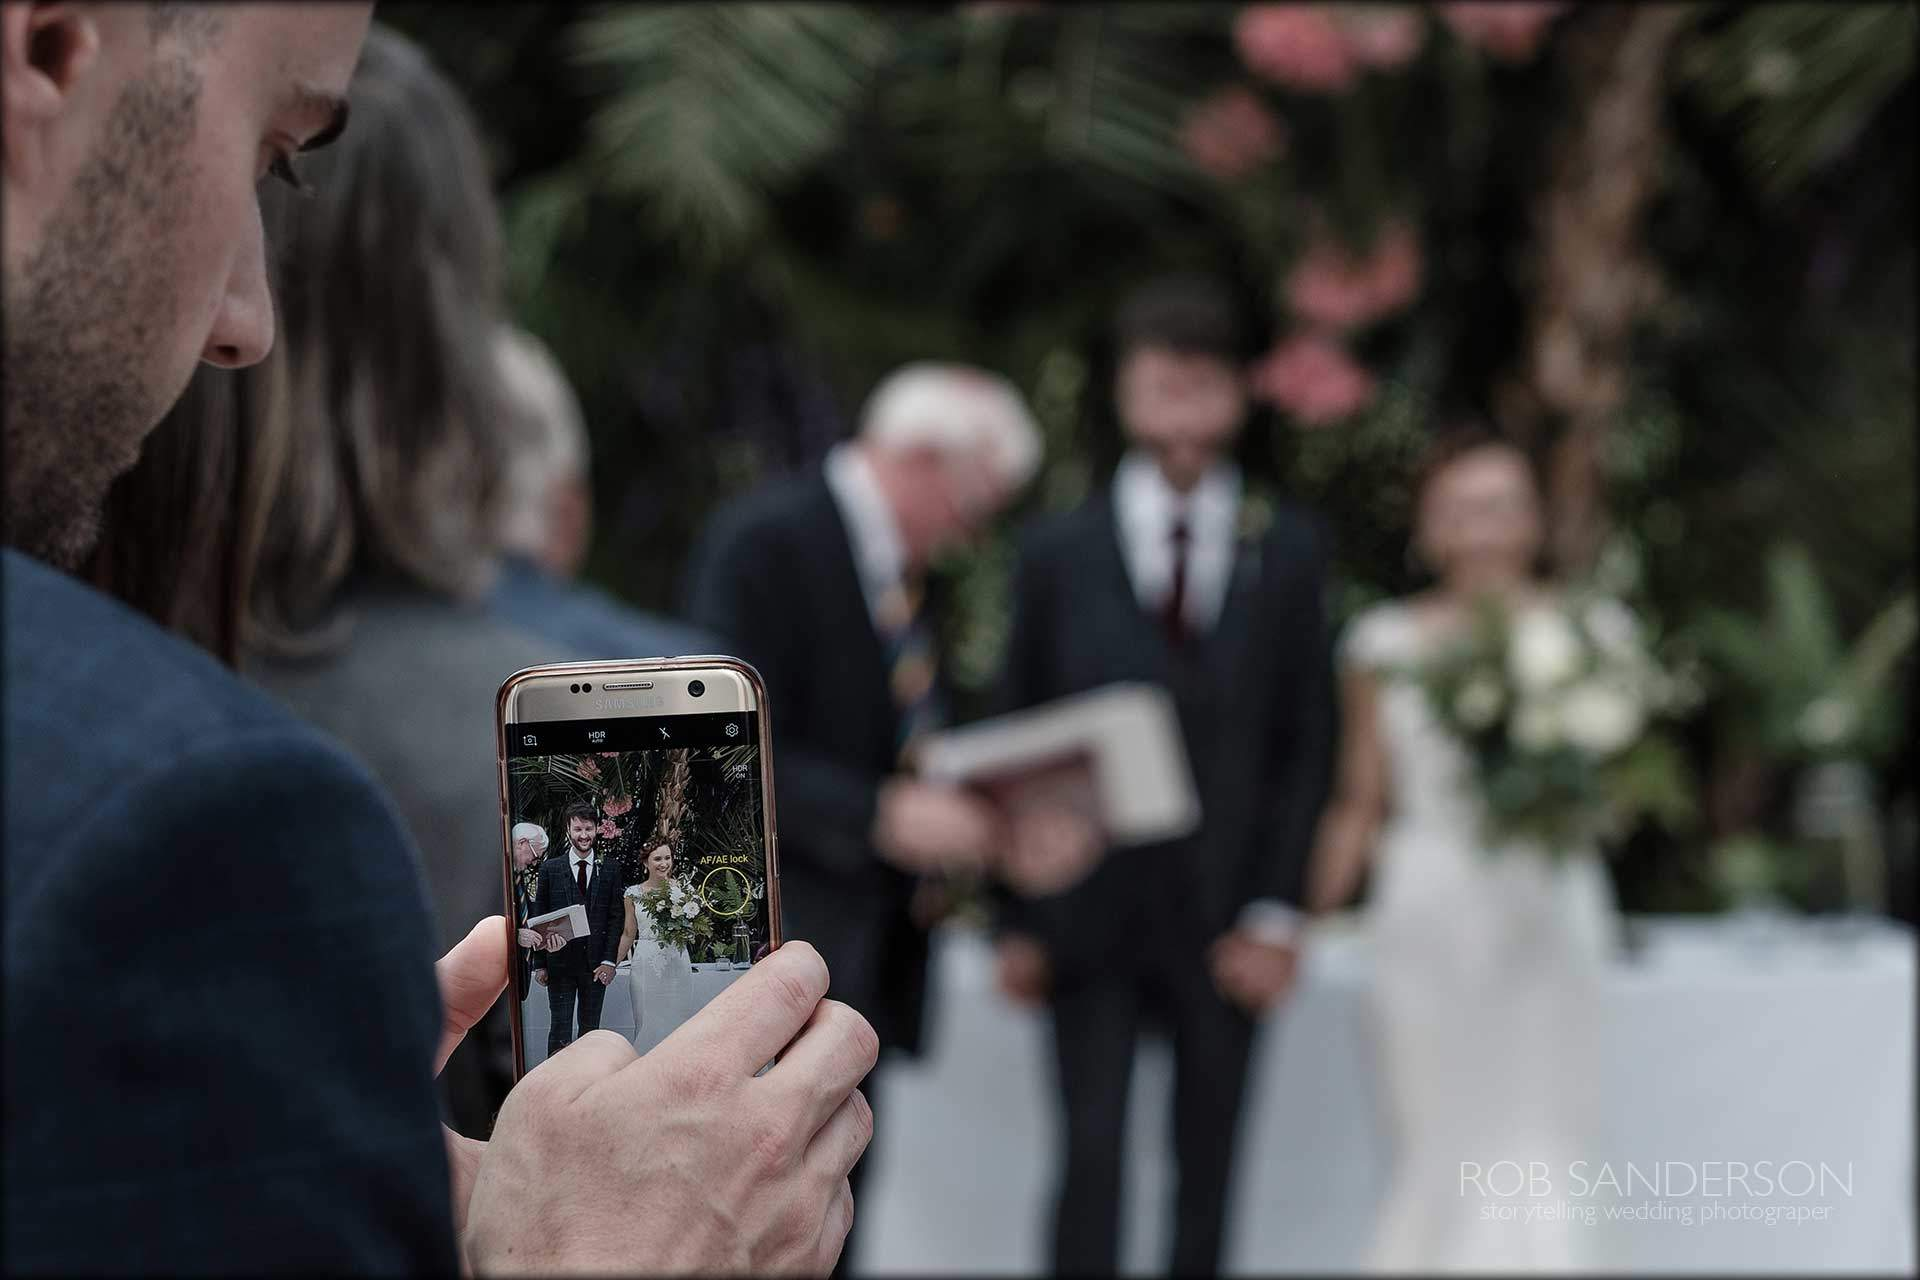 mobile phone wedding photography